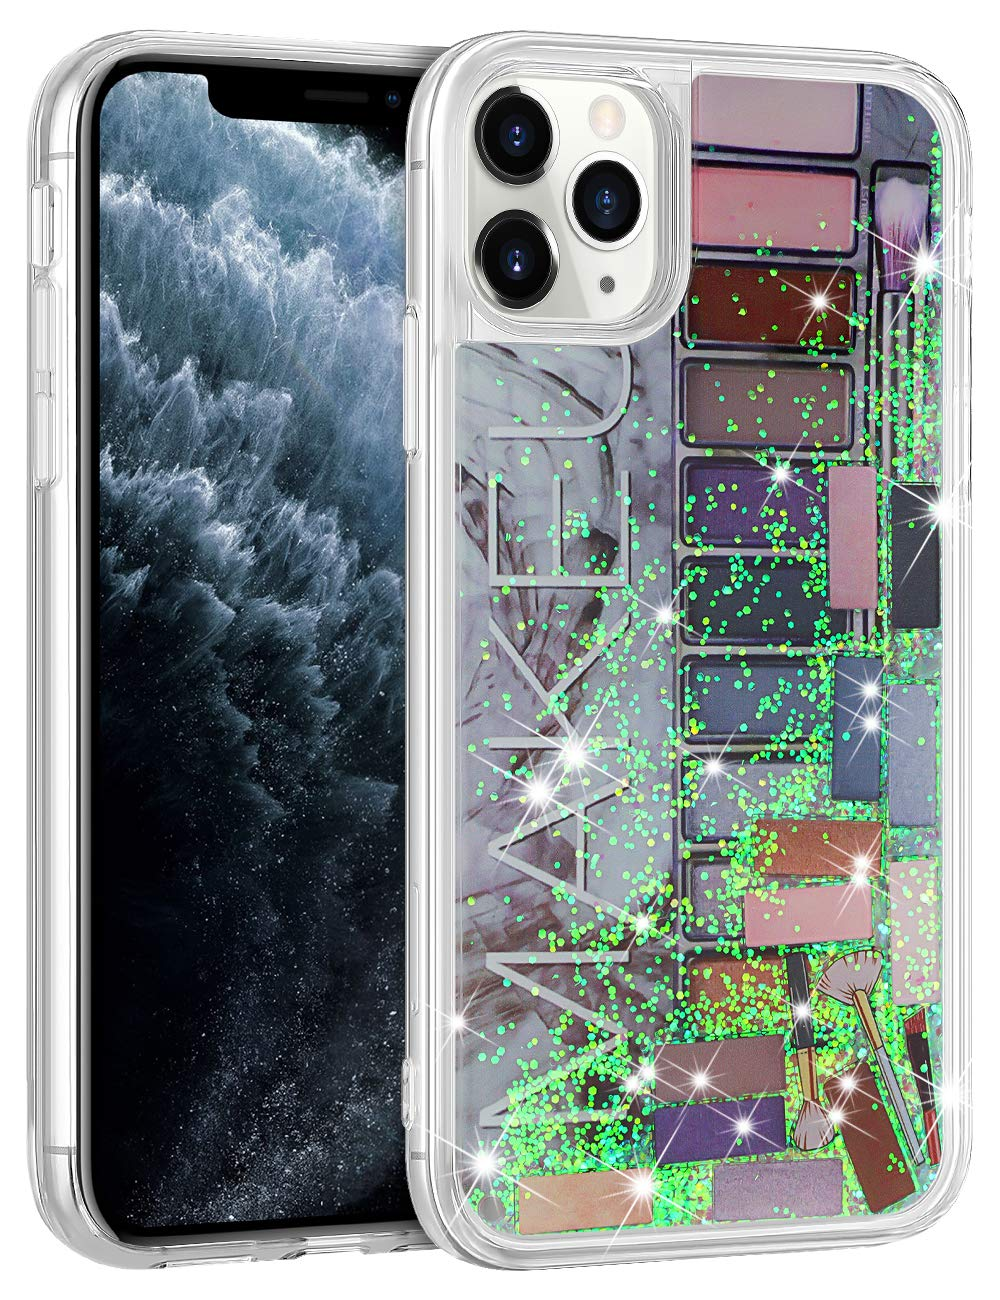 WOLLONY for iPhone 11 Pro Case for Women Girls Cute Eye Shadow Jigsaw Puzzle Makeup Bling Glitter Liquid Heavy Duty Shockproof Protective Cover Soft Bumper Hard Back for iPhone 11 Pro 5.8inch Grey